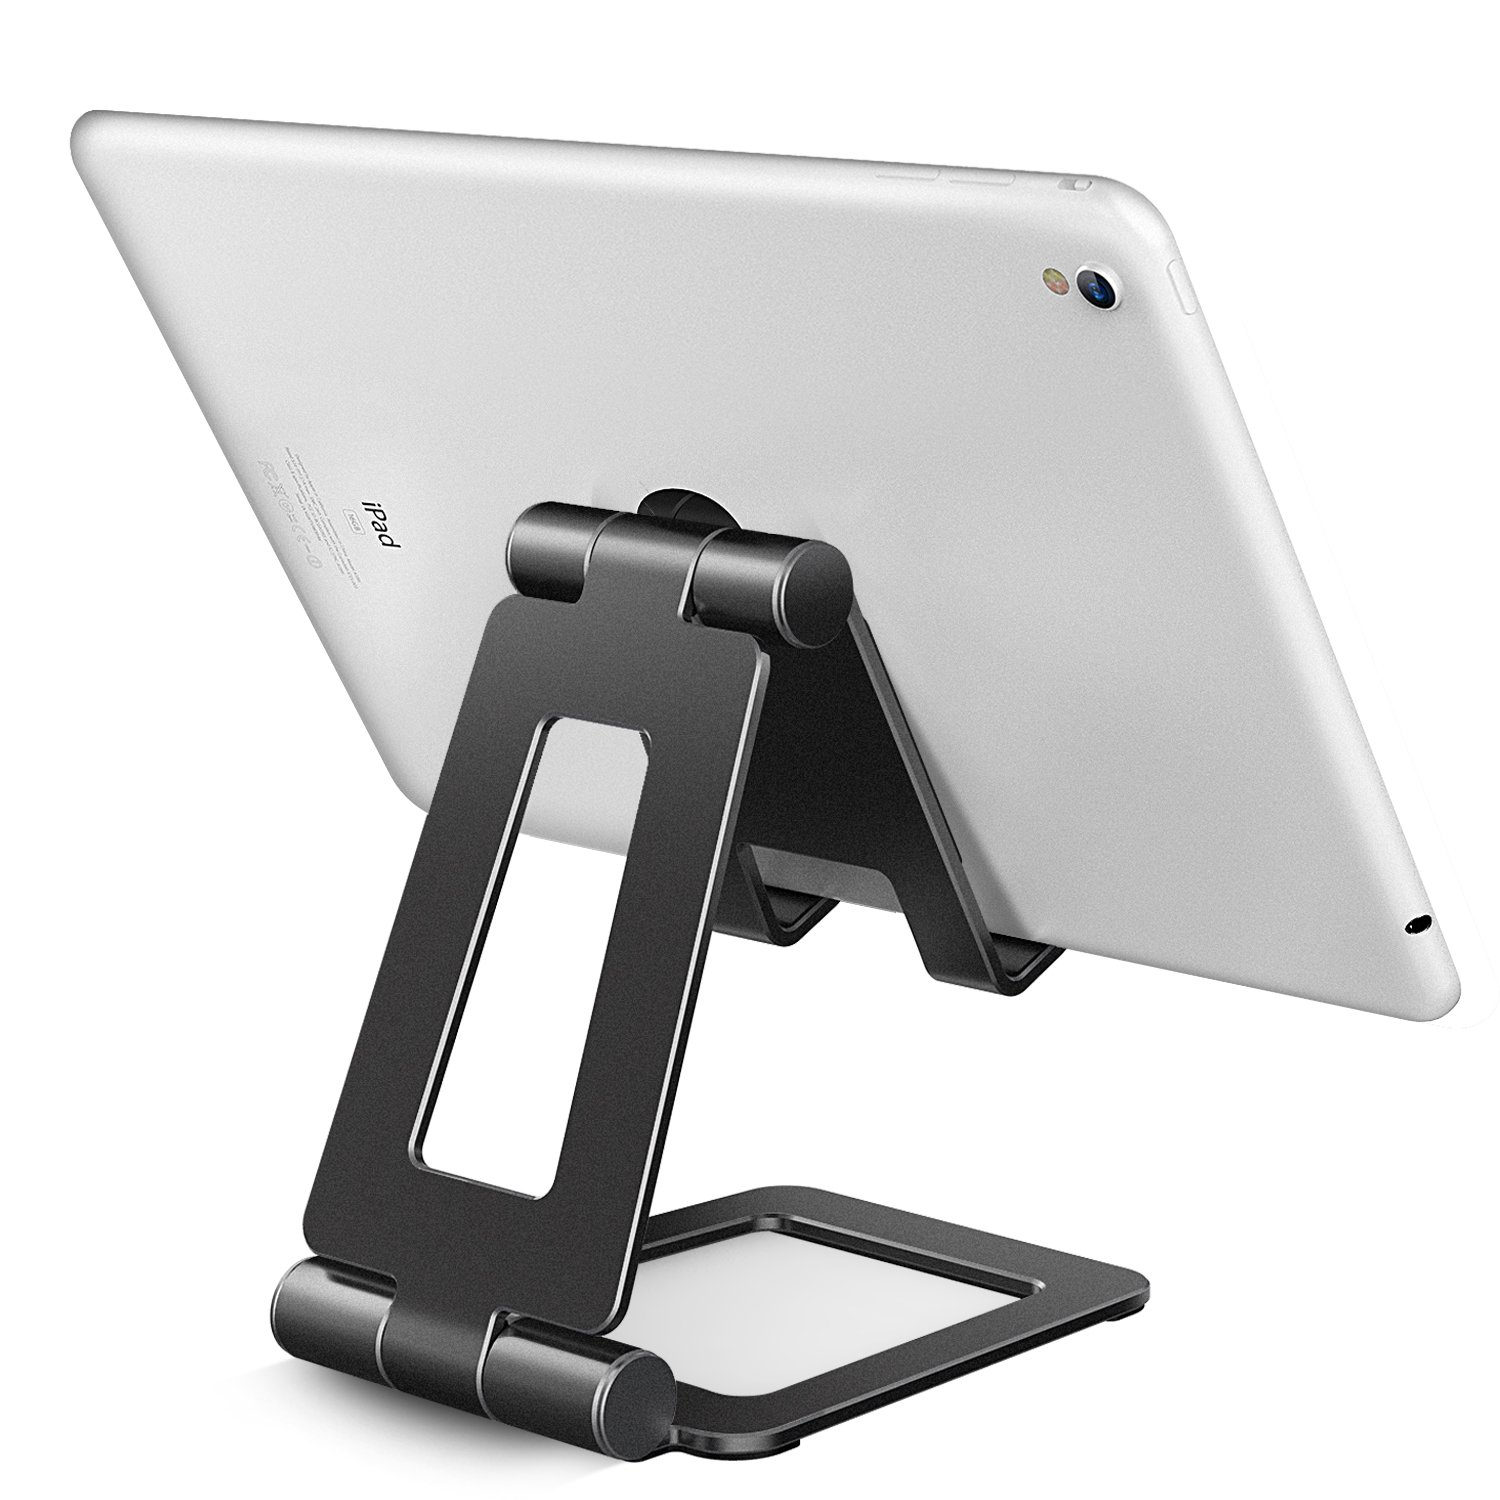 Adjustable iPad Stand, Tablet Stand Holders, Cell Phone Stands, iPhone Stand, Nintendo Switch Stand, iPad Pro Stand, iPad Mini Stands and Holders for Desk (4-10 inch)